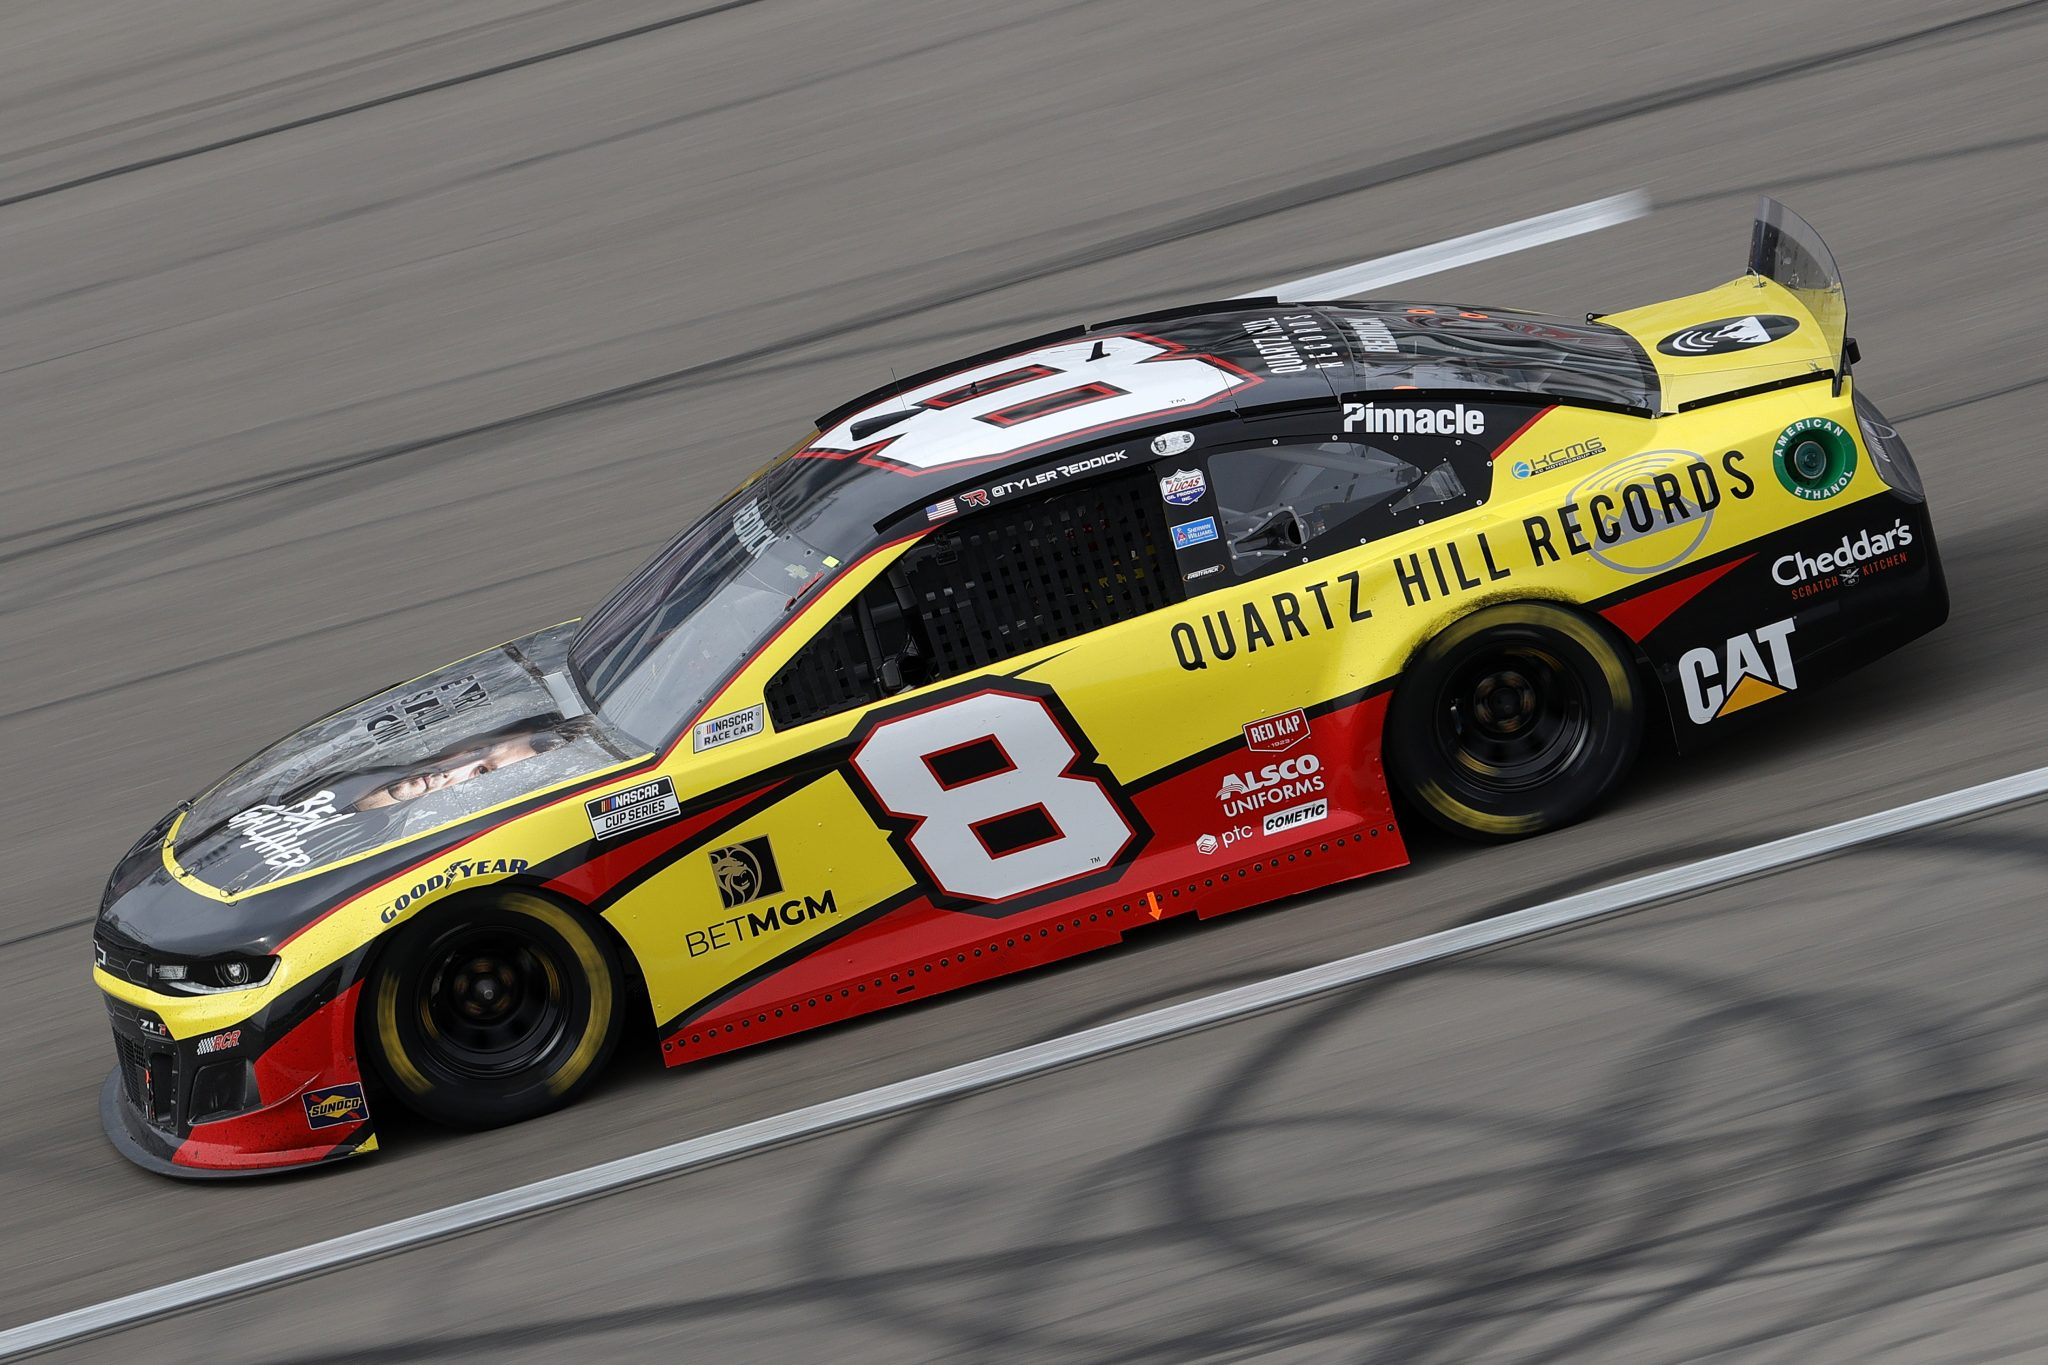 LAS VEGAS, NEVADA - MARCH 07: Tyler Reddick, driver of the #8 Quartz Hill Records Chevrolet, drives during the NASCAR Cup Series Pennzoil 400 presented by Jiffy Lube at the Las Vegas Motor Speedway on March 07, 2021 in Las Vegas, Nevada. (Photo by Chris Graythen/Getty Images) | Getty Images